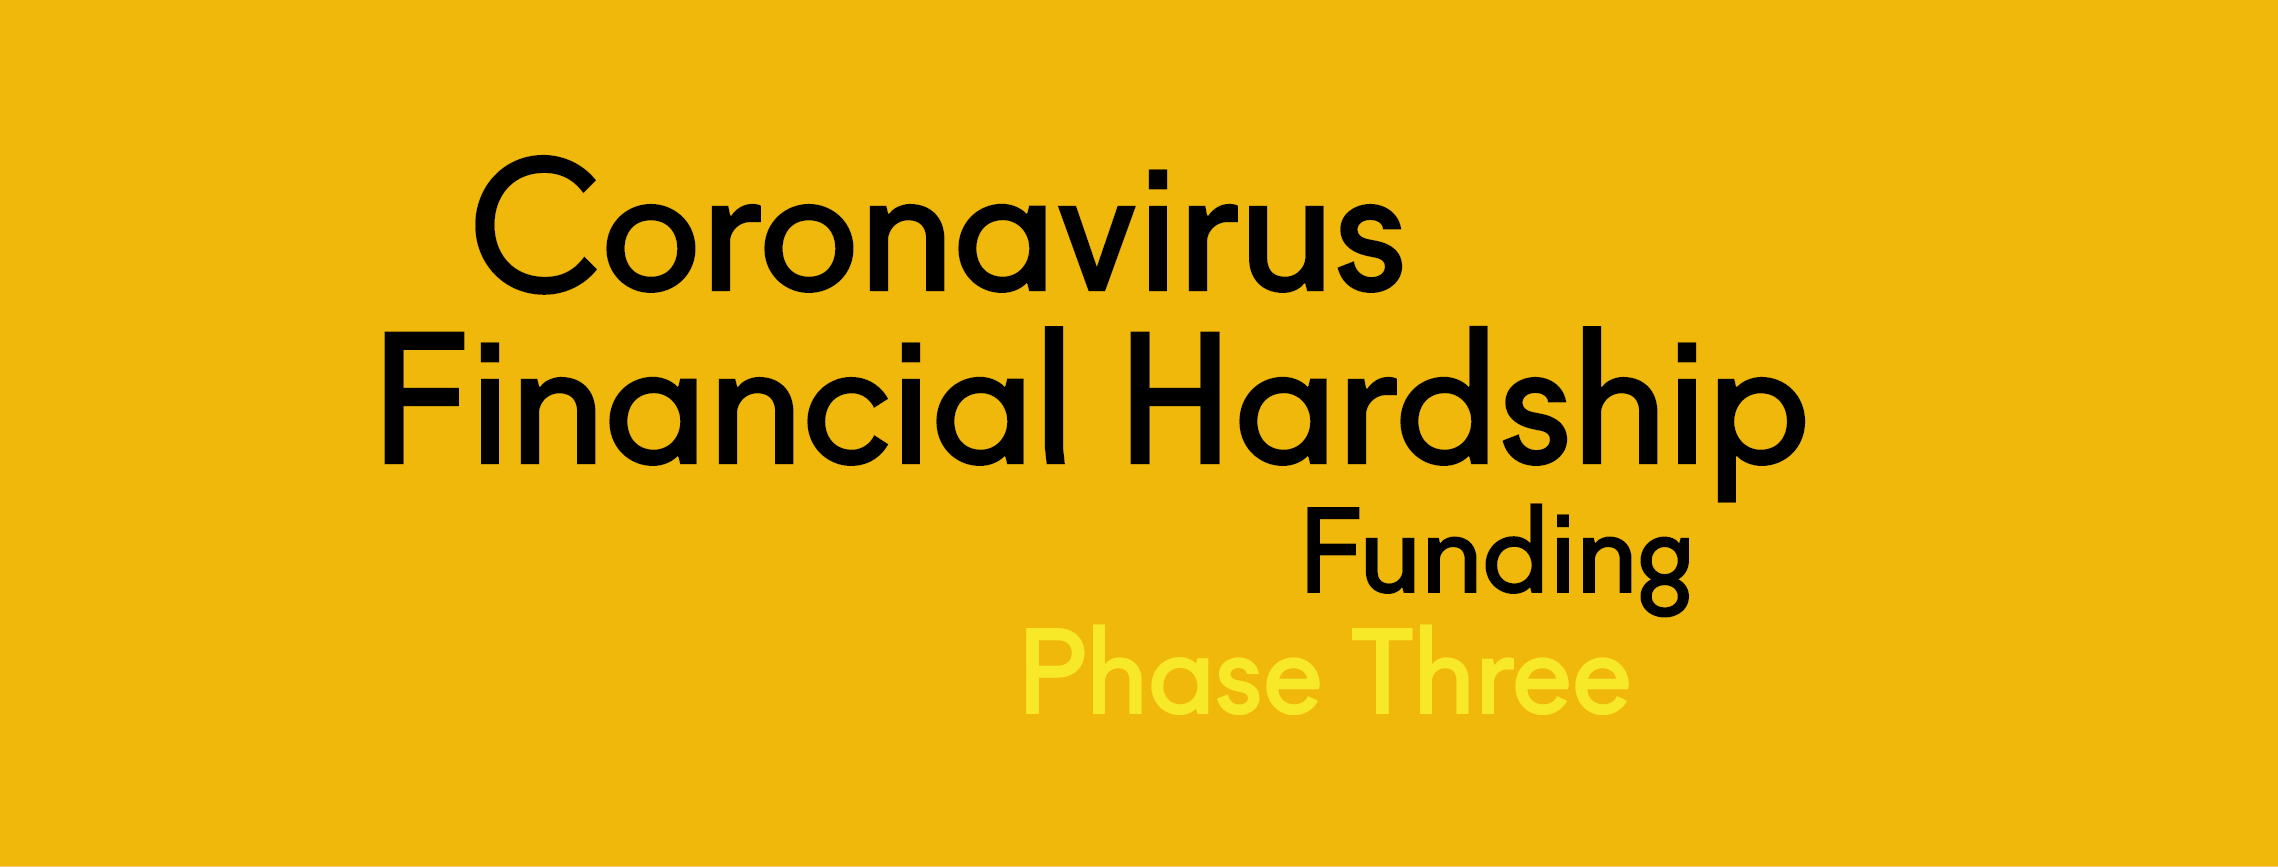 Help Musicians Hardship Fund Phase 3 announcement